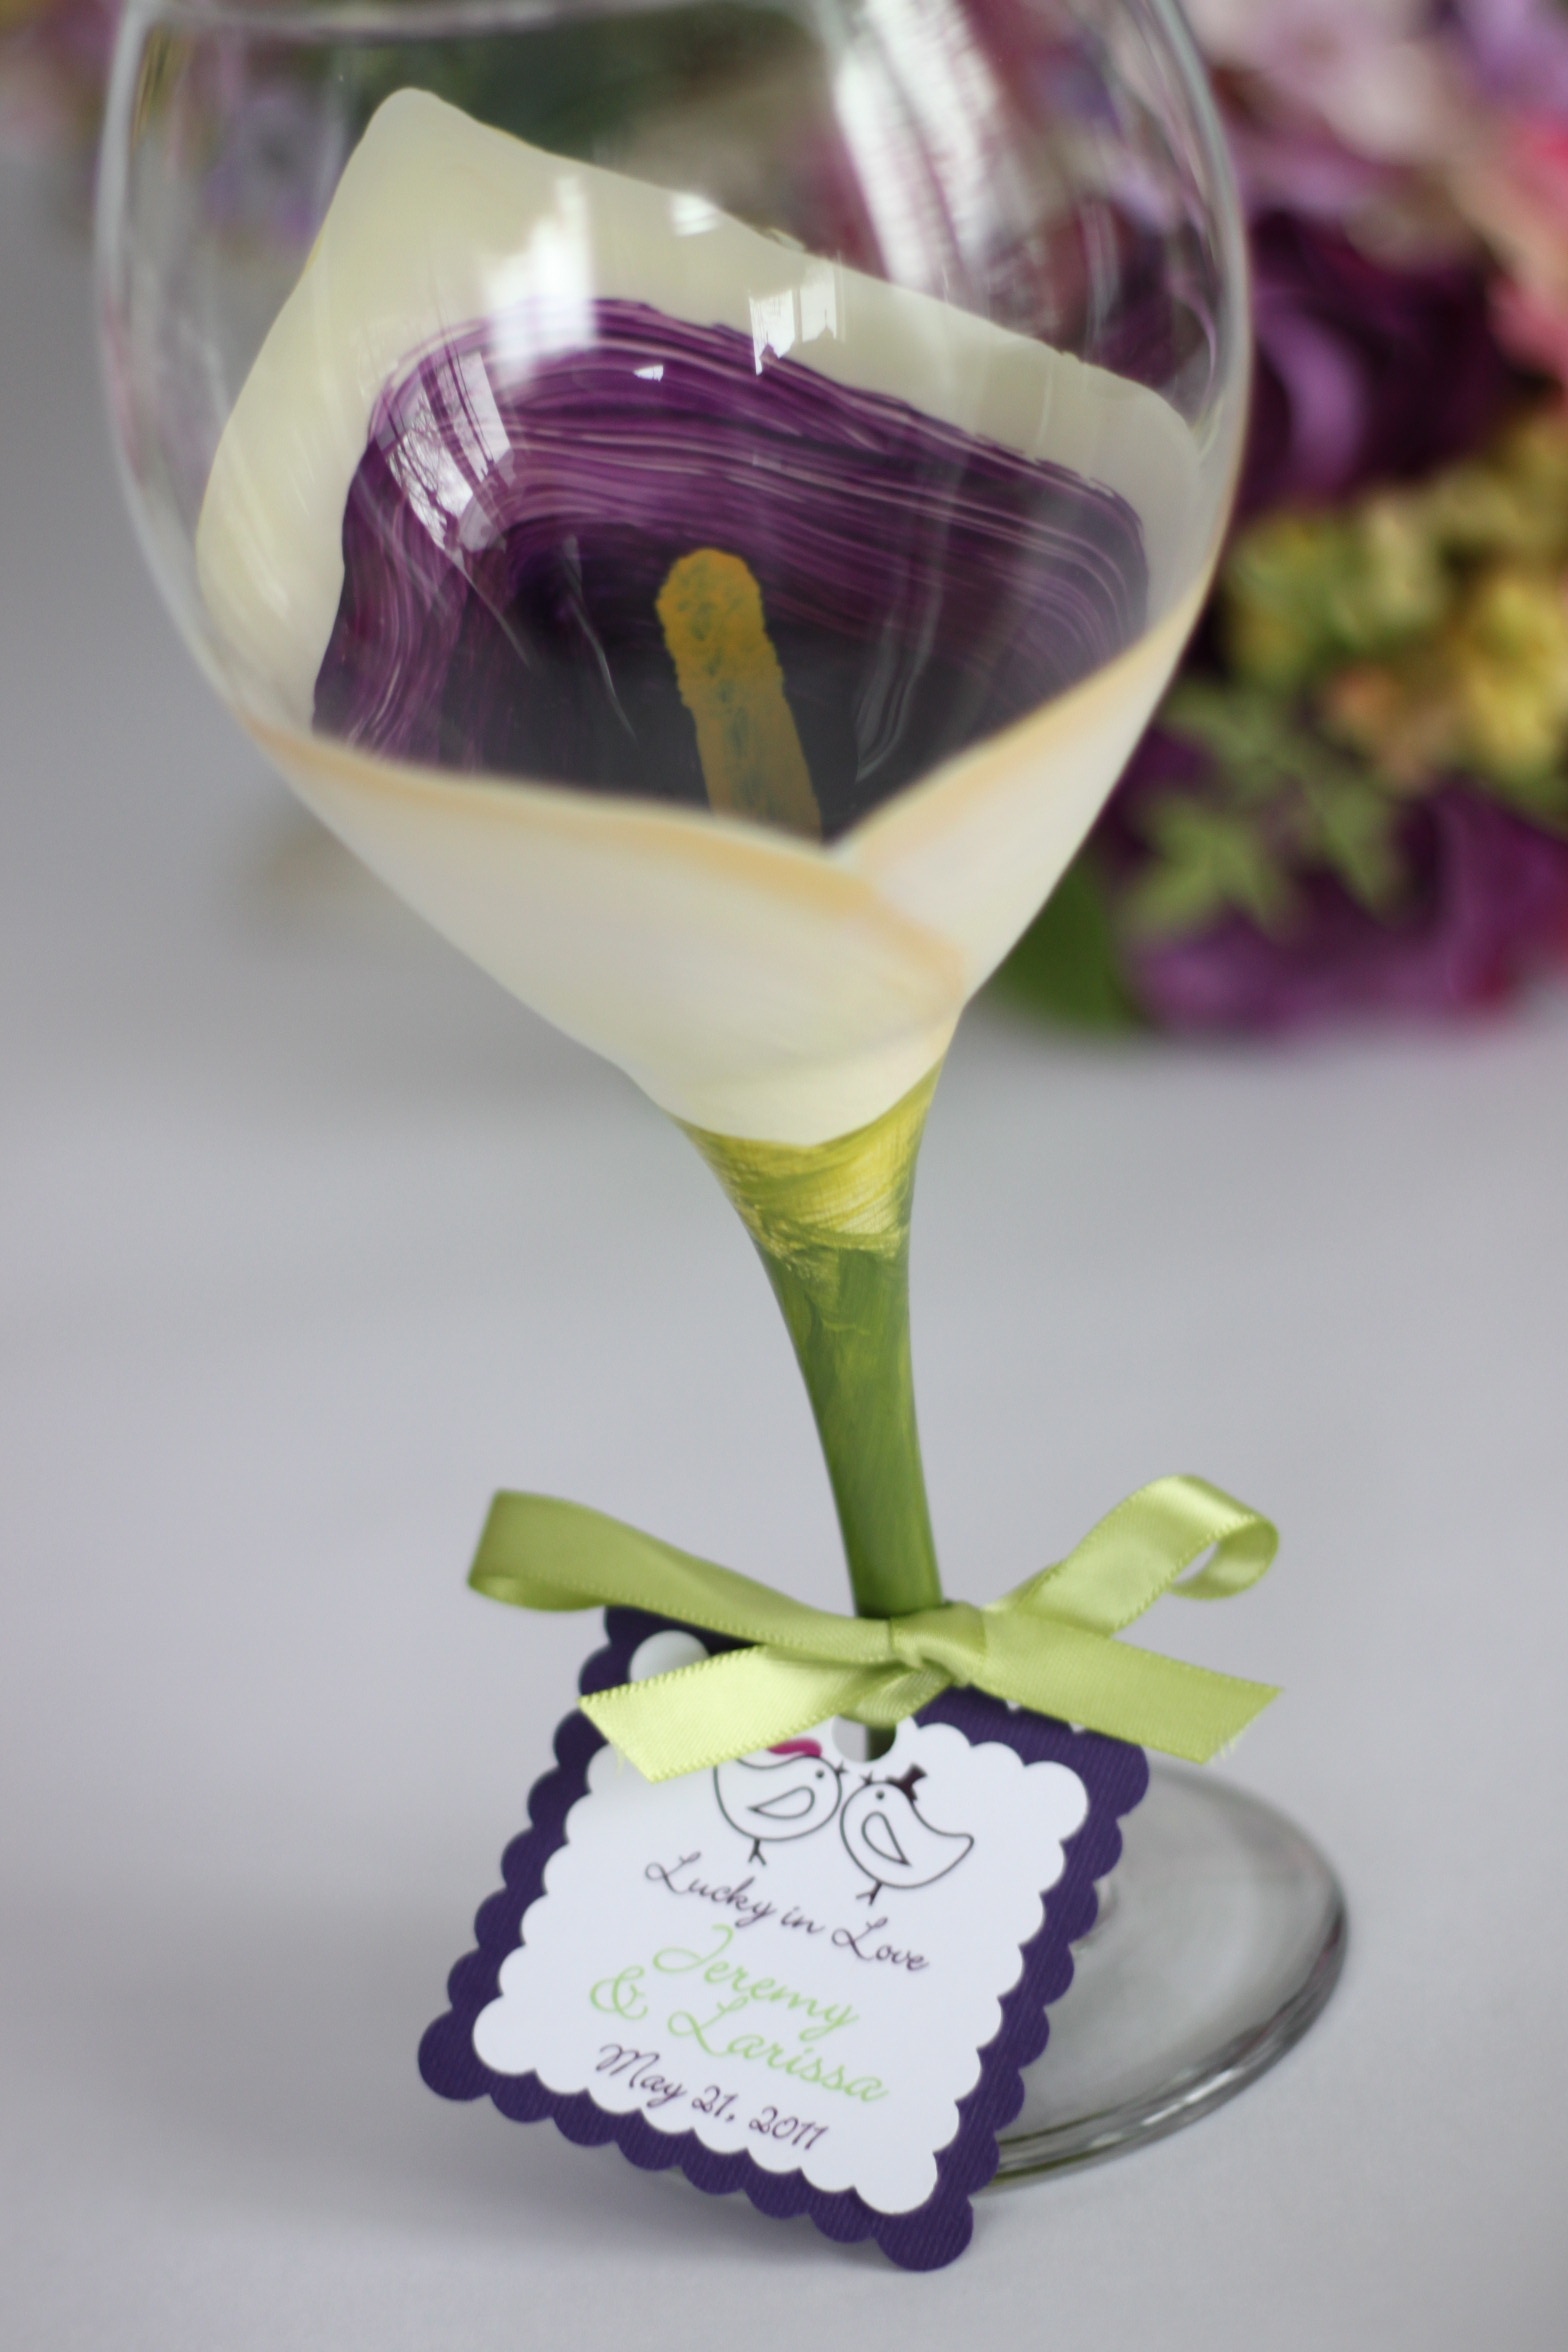 Reception, Flowers & Decor, Decor, Favors & Gifts, Bridesmaids, Bridesmaids Dresses, Fashion, purple, Favors, Glassware, Calla, Lilly, Inspiration board, Painted, Functional